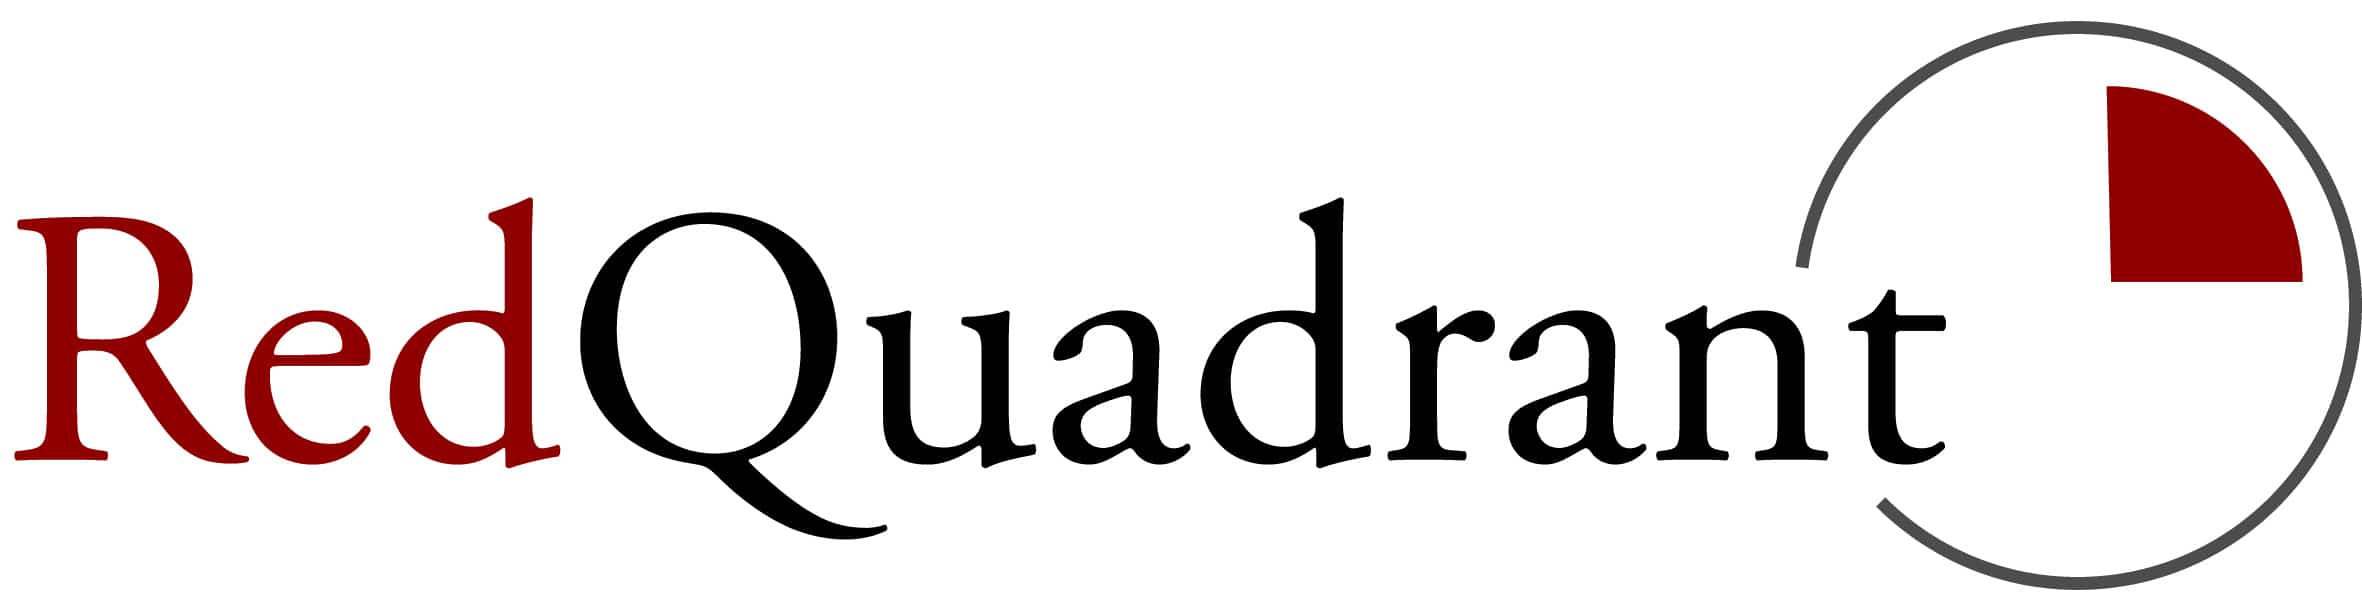 Image result for red quadrant logo